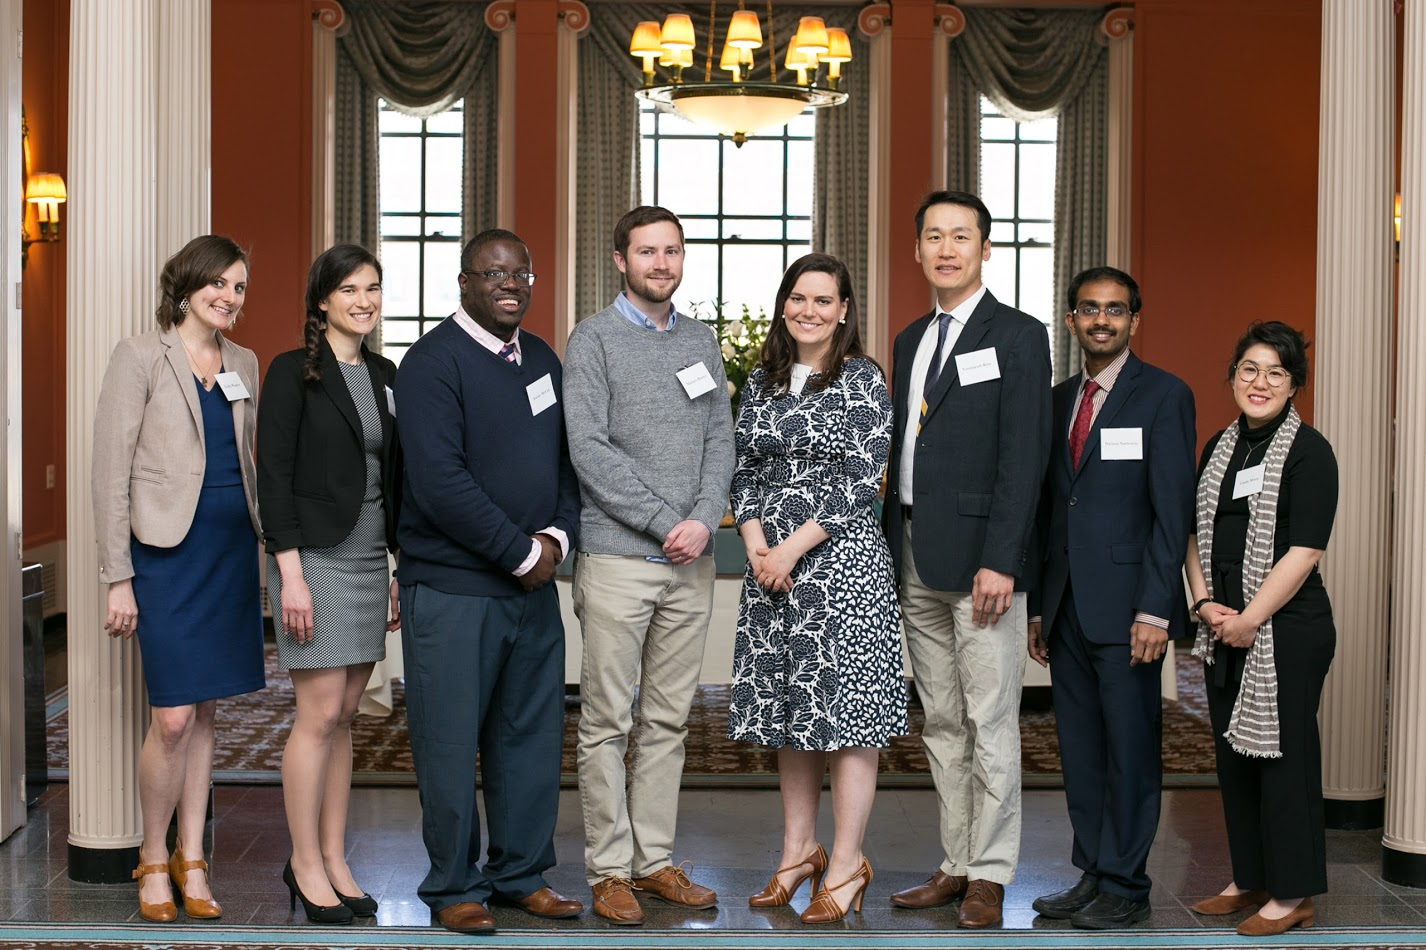 ProQuest Distinguished Dissertation Award – U of M - Top 10 out of 800 dissertations completed in 2016 were recognized by Rackham Graduate School. (link)University of Michigan, Ann Arbor, MI, April 2017